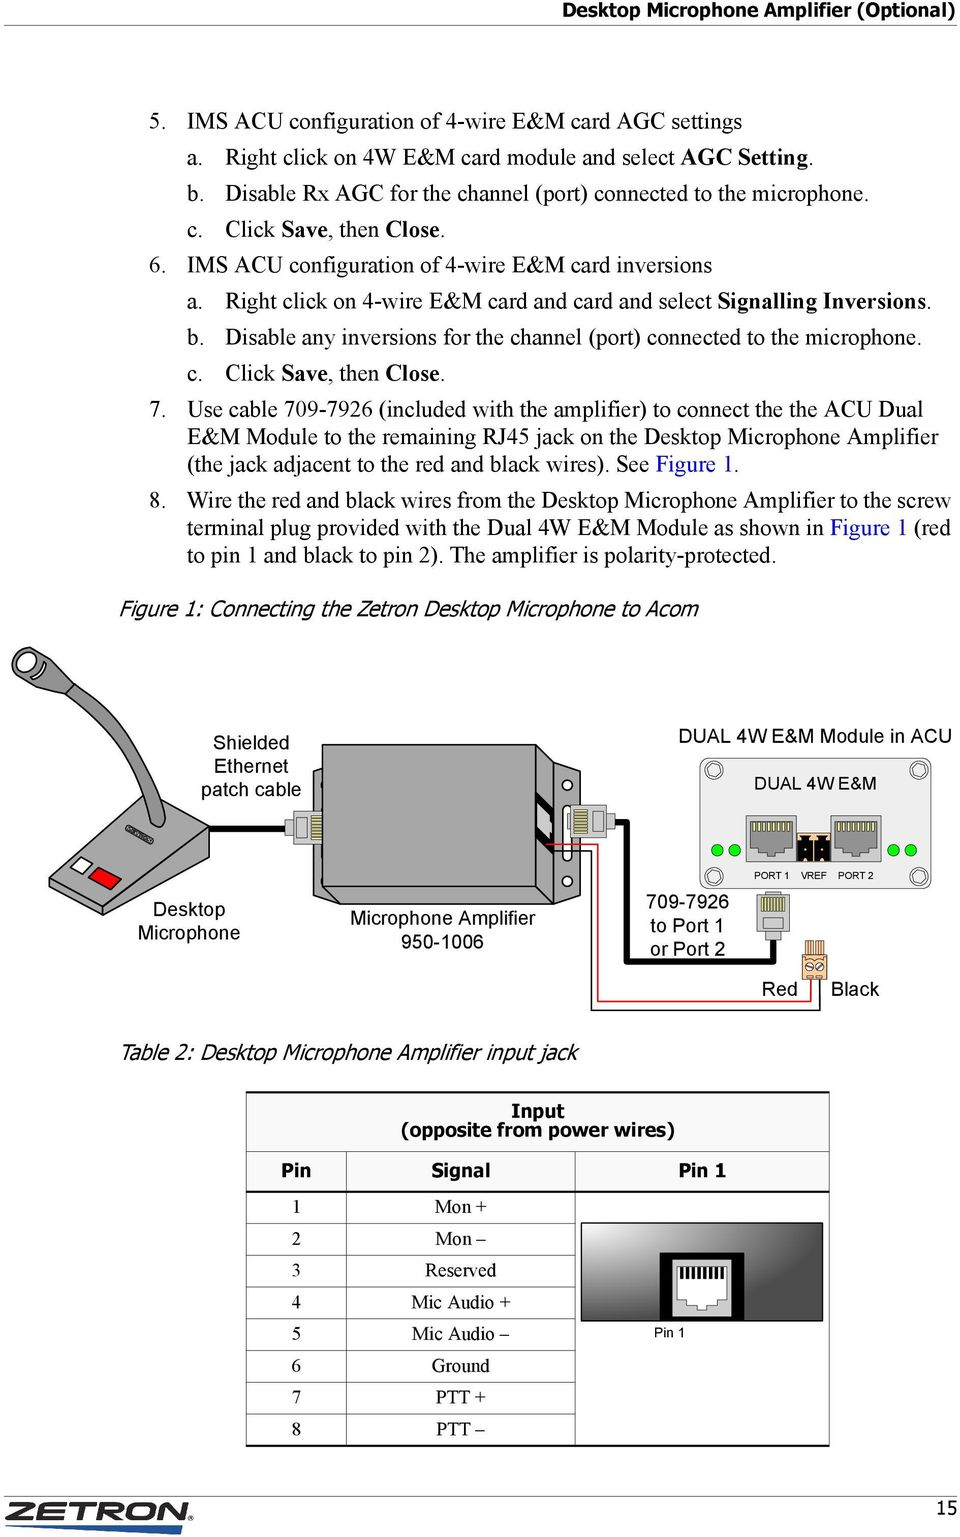 Right click on 4-wire E&M card and card and select Signalling Inversions. b. Disable any inversions for the channel (port) connected to the microphone. c. Click Save, then Close. 7.